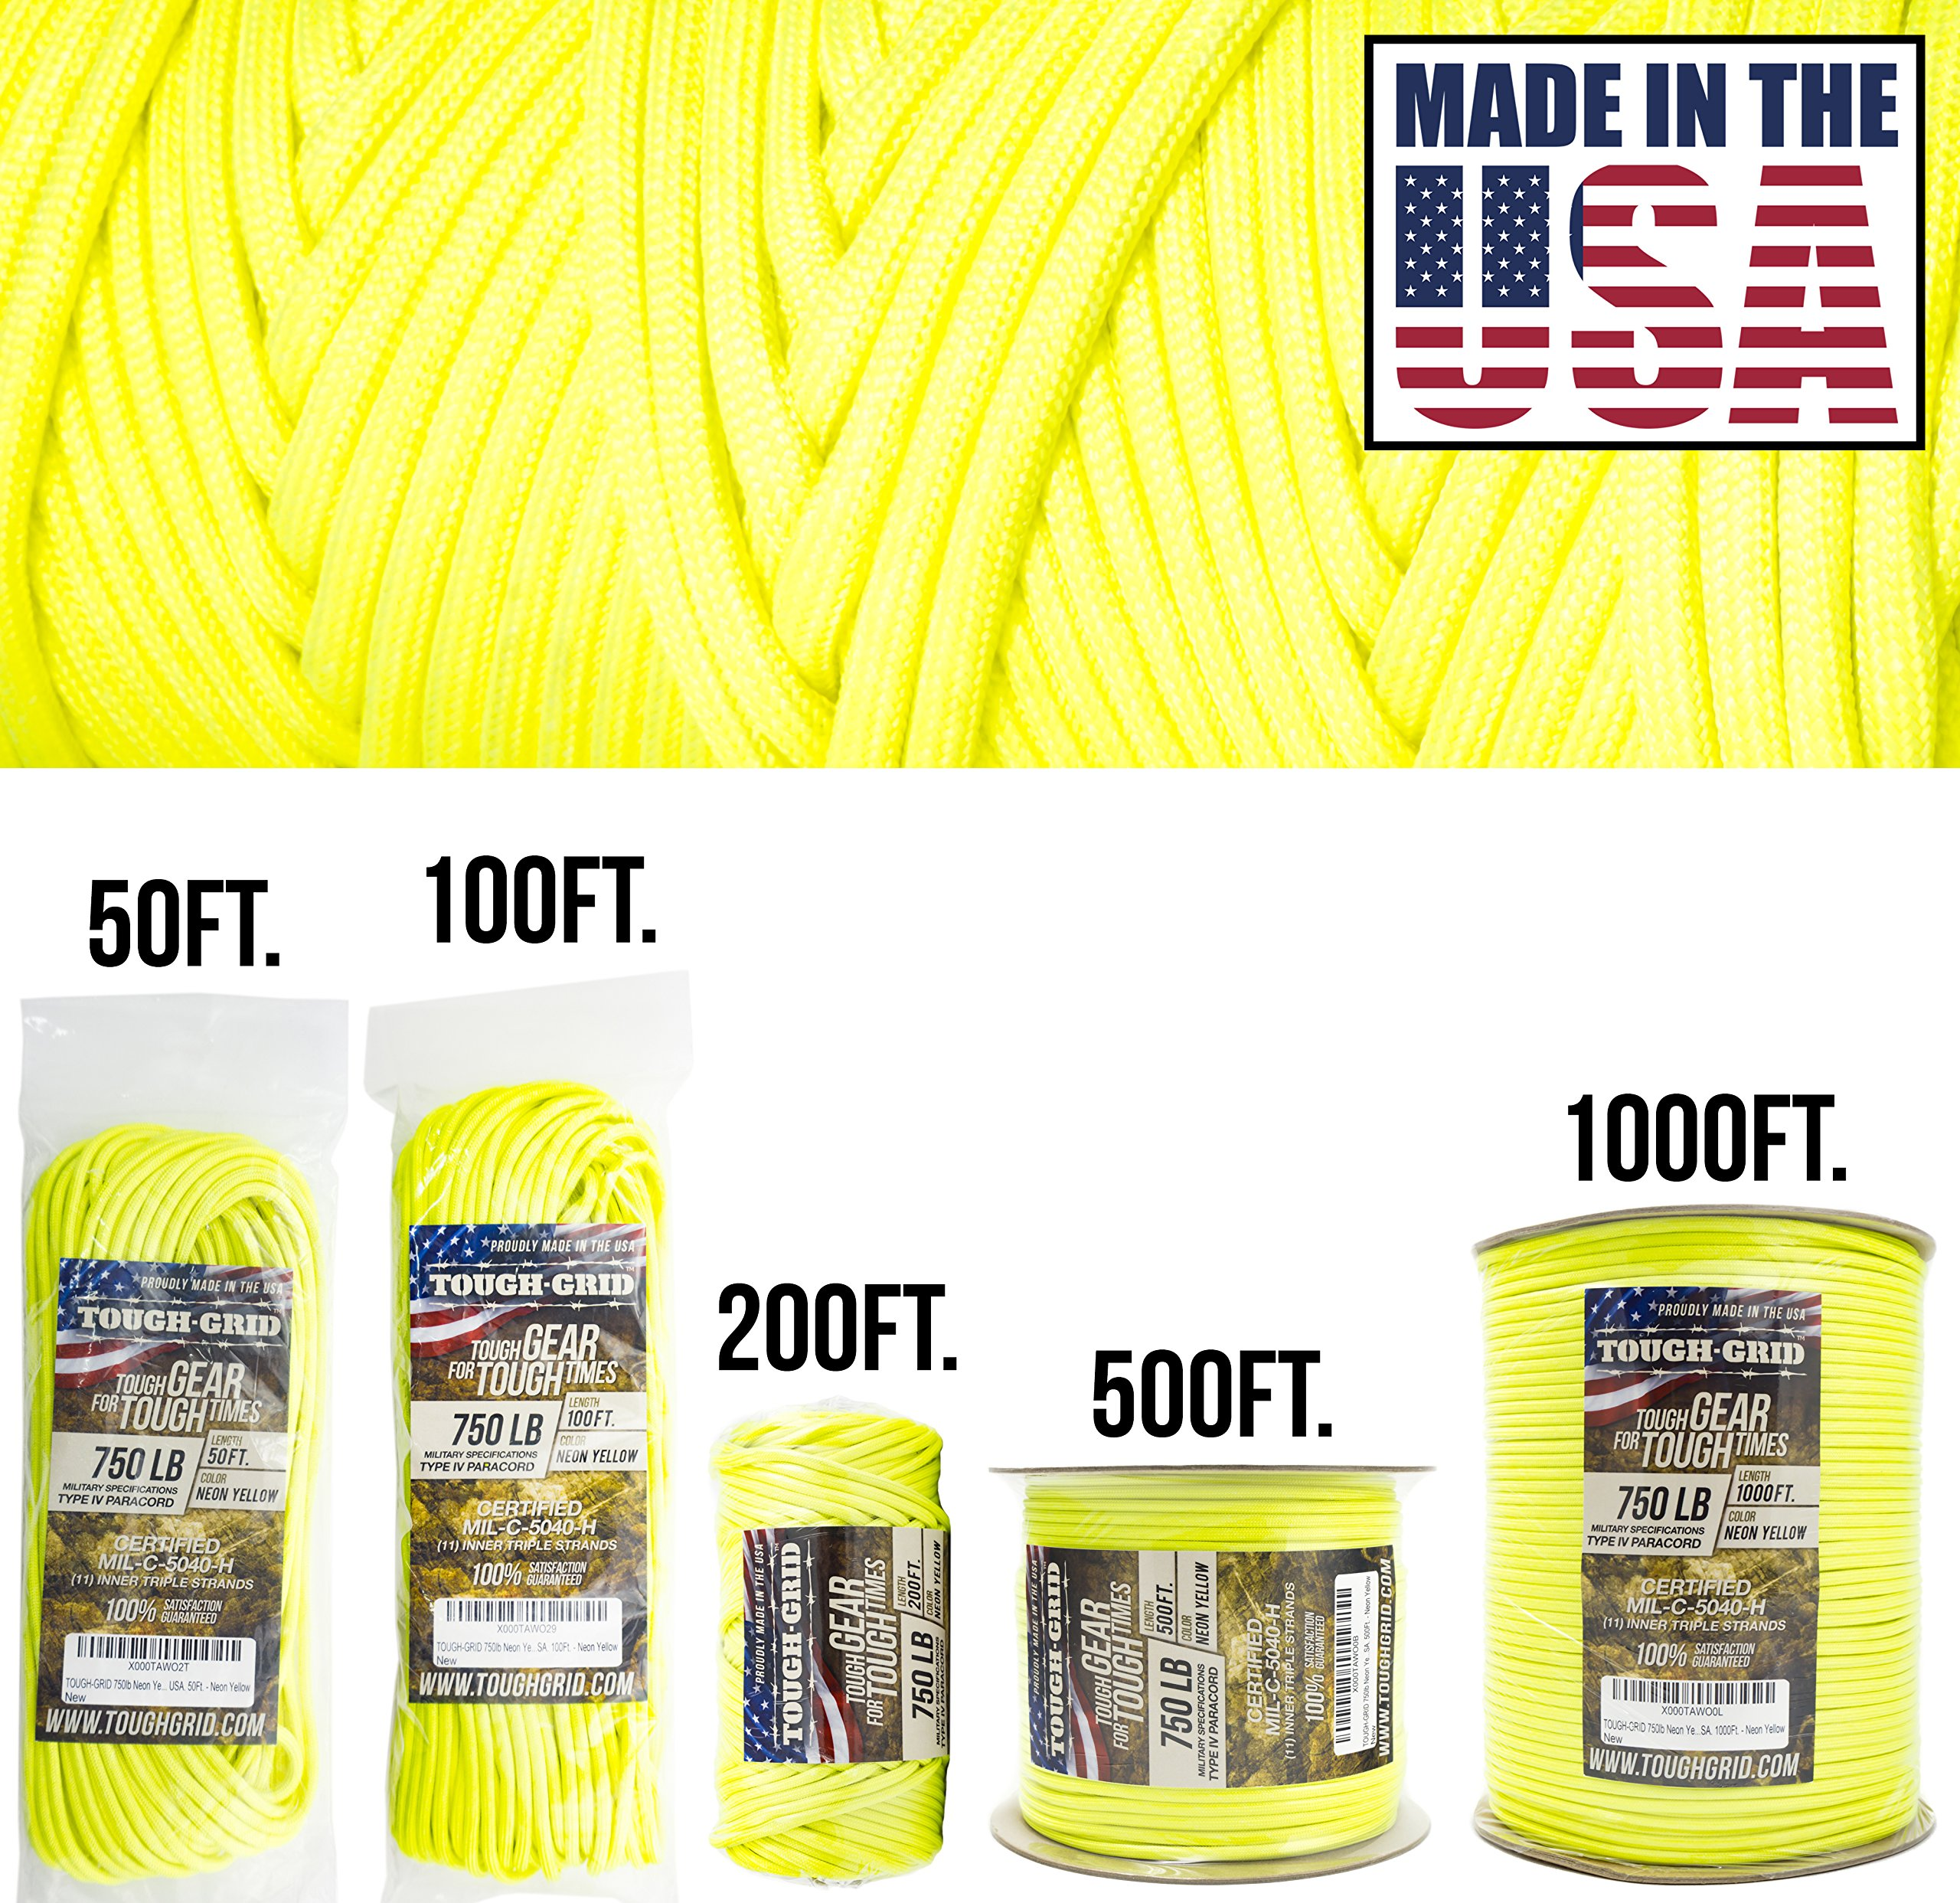 003fe63f890 TOUGH-GRID 750lb Paracord Parachute Cord - Genuine Mil Spec Type IV 750lb  Paracord Used by the US Military (MIl-C-5040-H) - 100% Nylon - Made In The  USA.